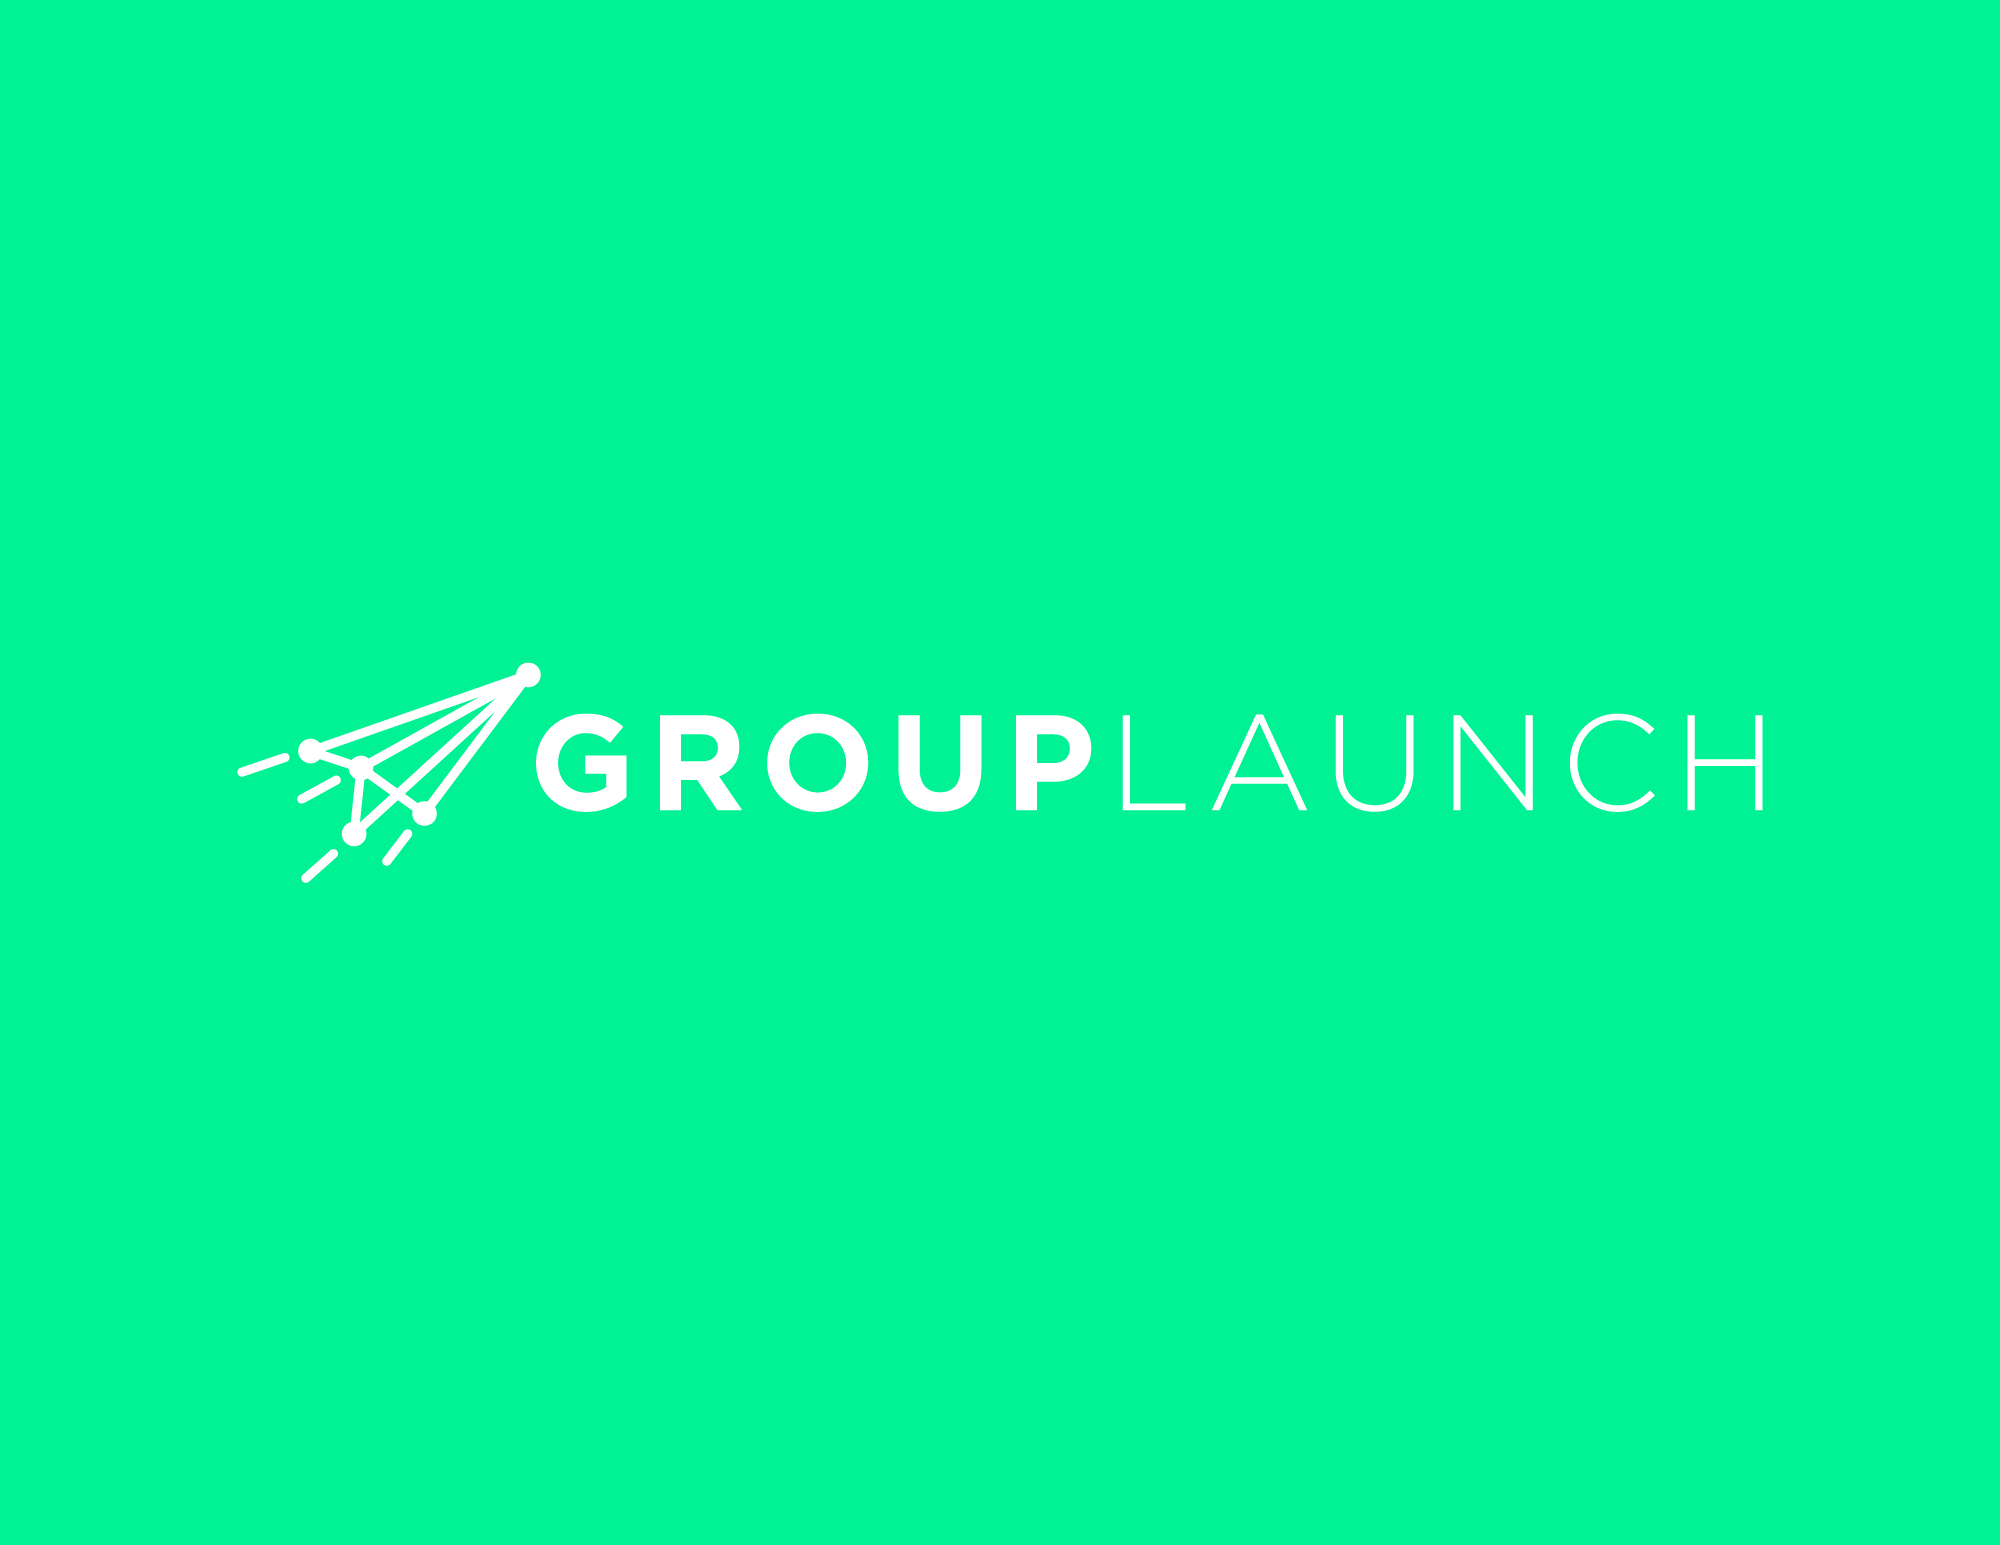 Copy of GroupLaunch-Color-6.jpg